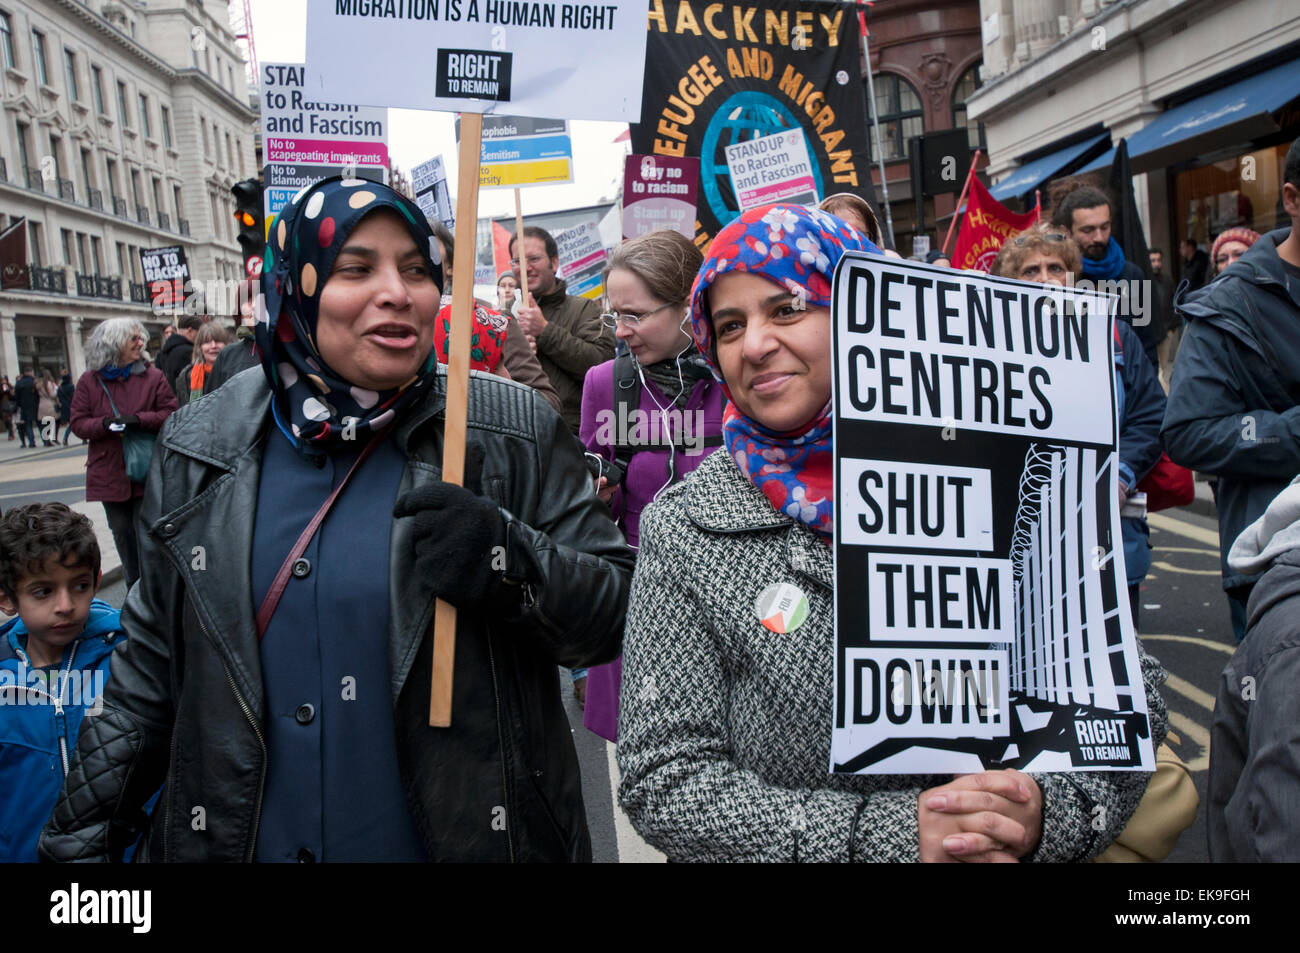 Thousands march through London on UN Anti-Racism Day protesting Racism, Fascism, Islamophobia  and anti-semitism. - Stock Image